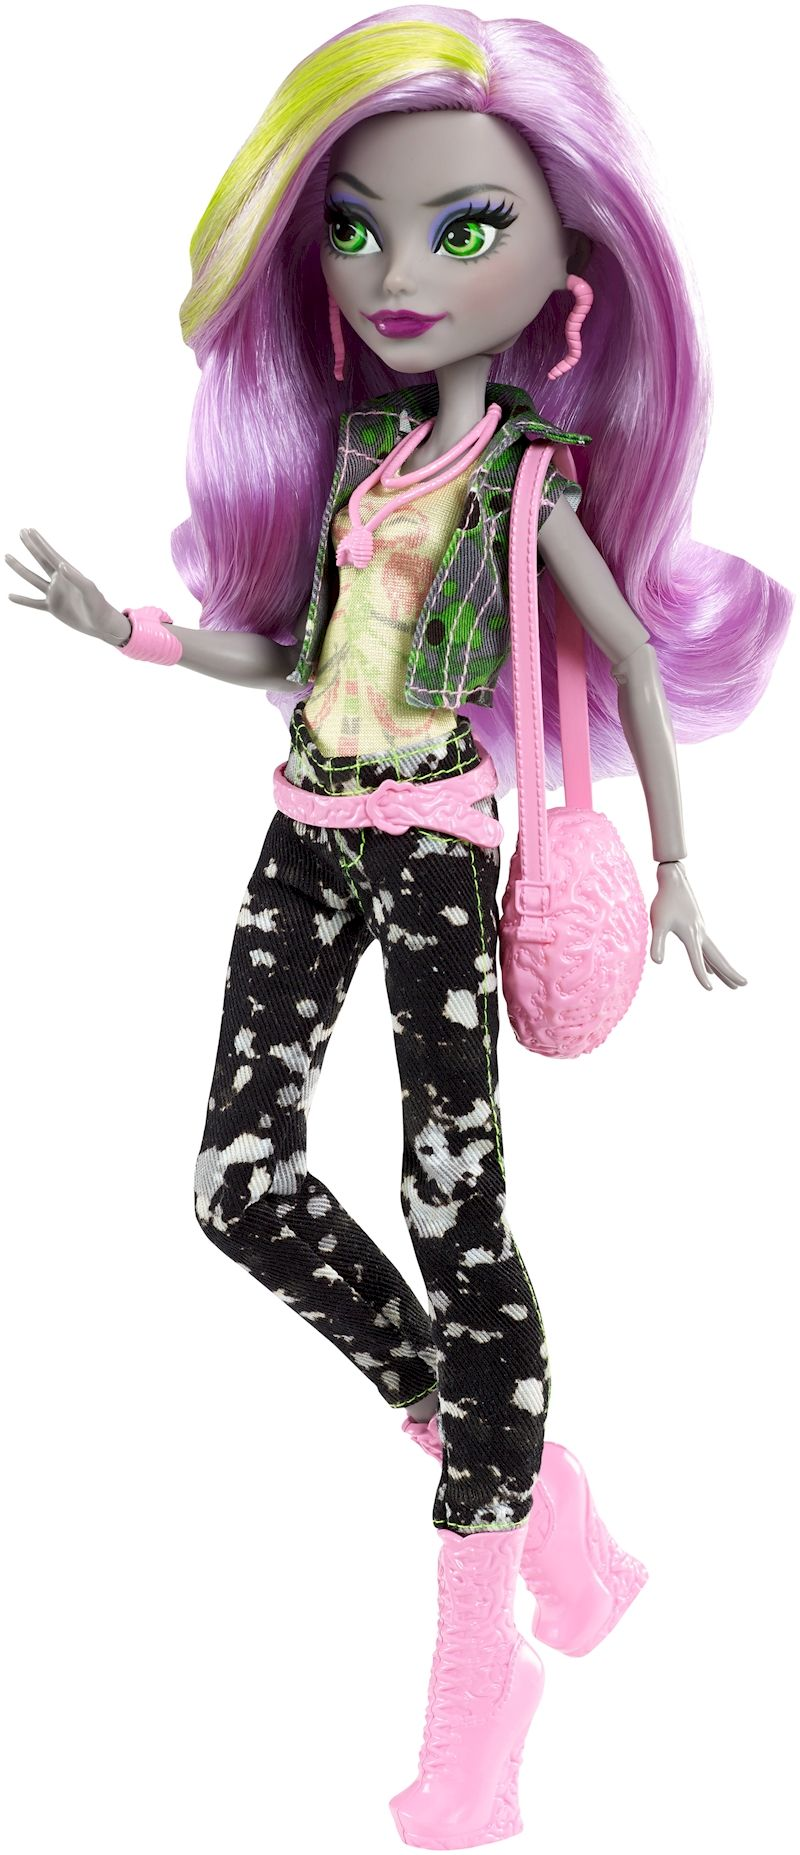 MONSTER HIGH® WELCOME TO MONSTER HIGH MOANICA D'KAY™ DOLL